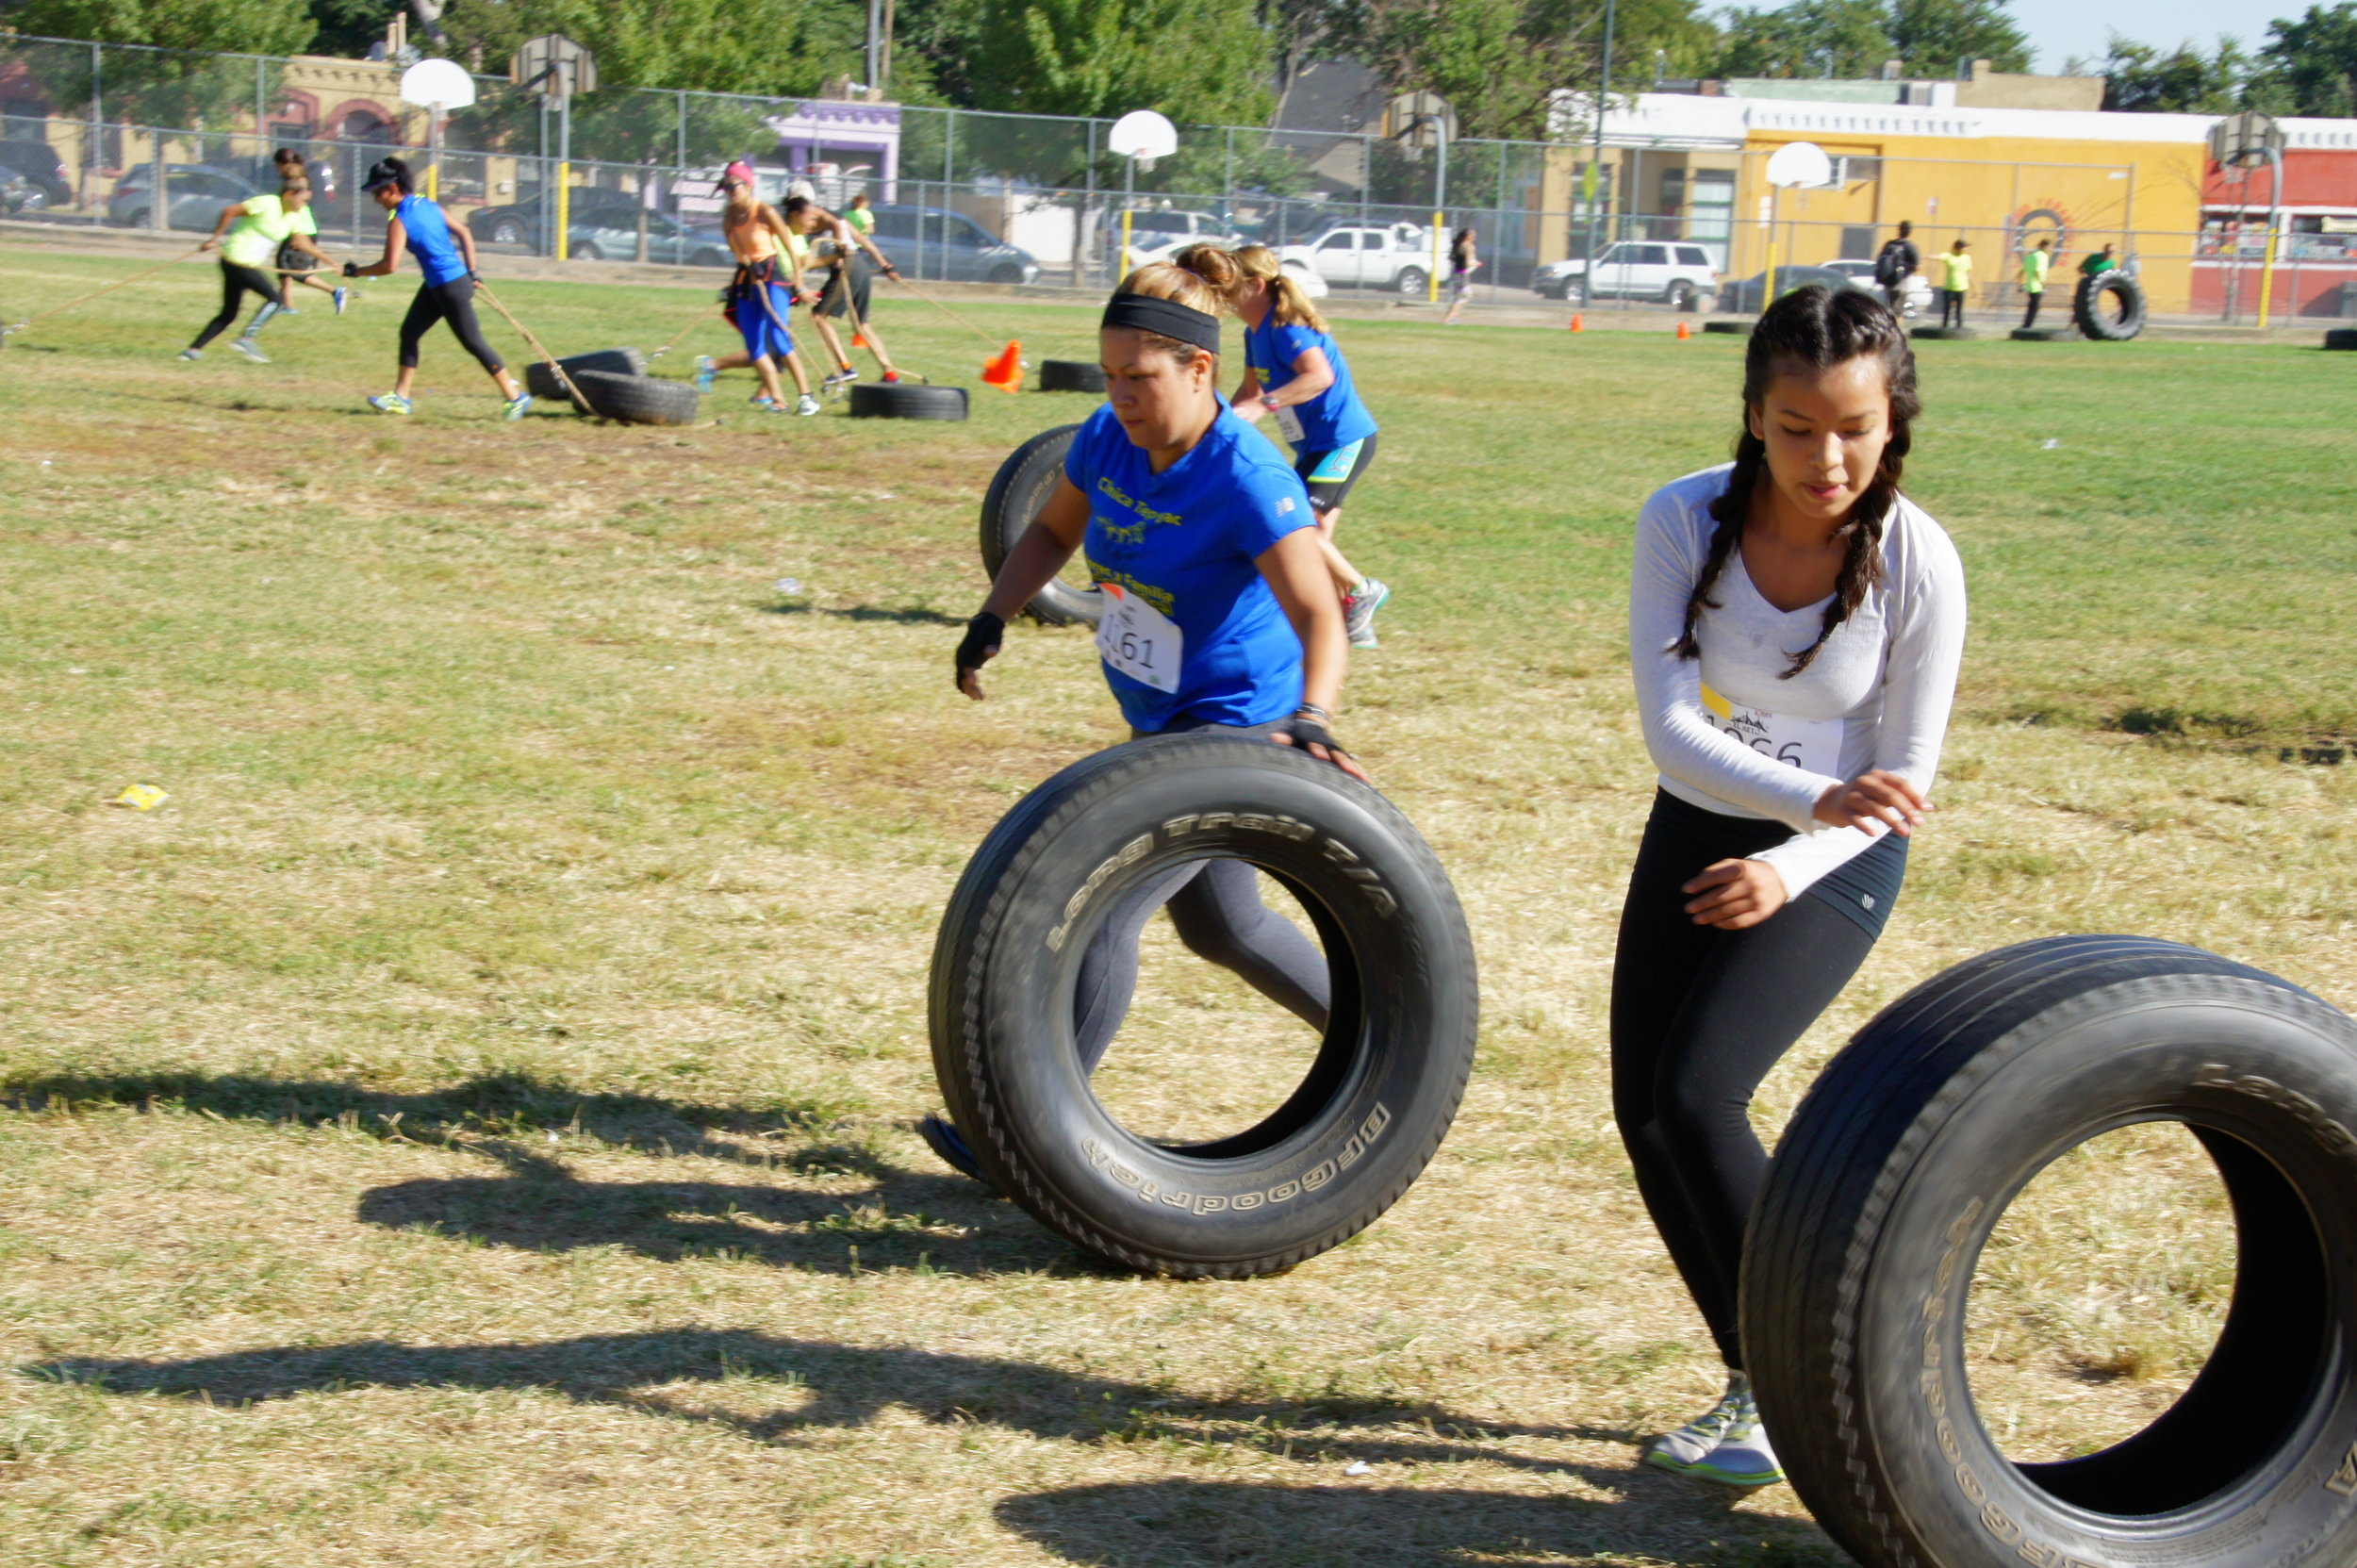 Community event - Obstacle course, tire rolling for prizes